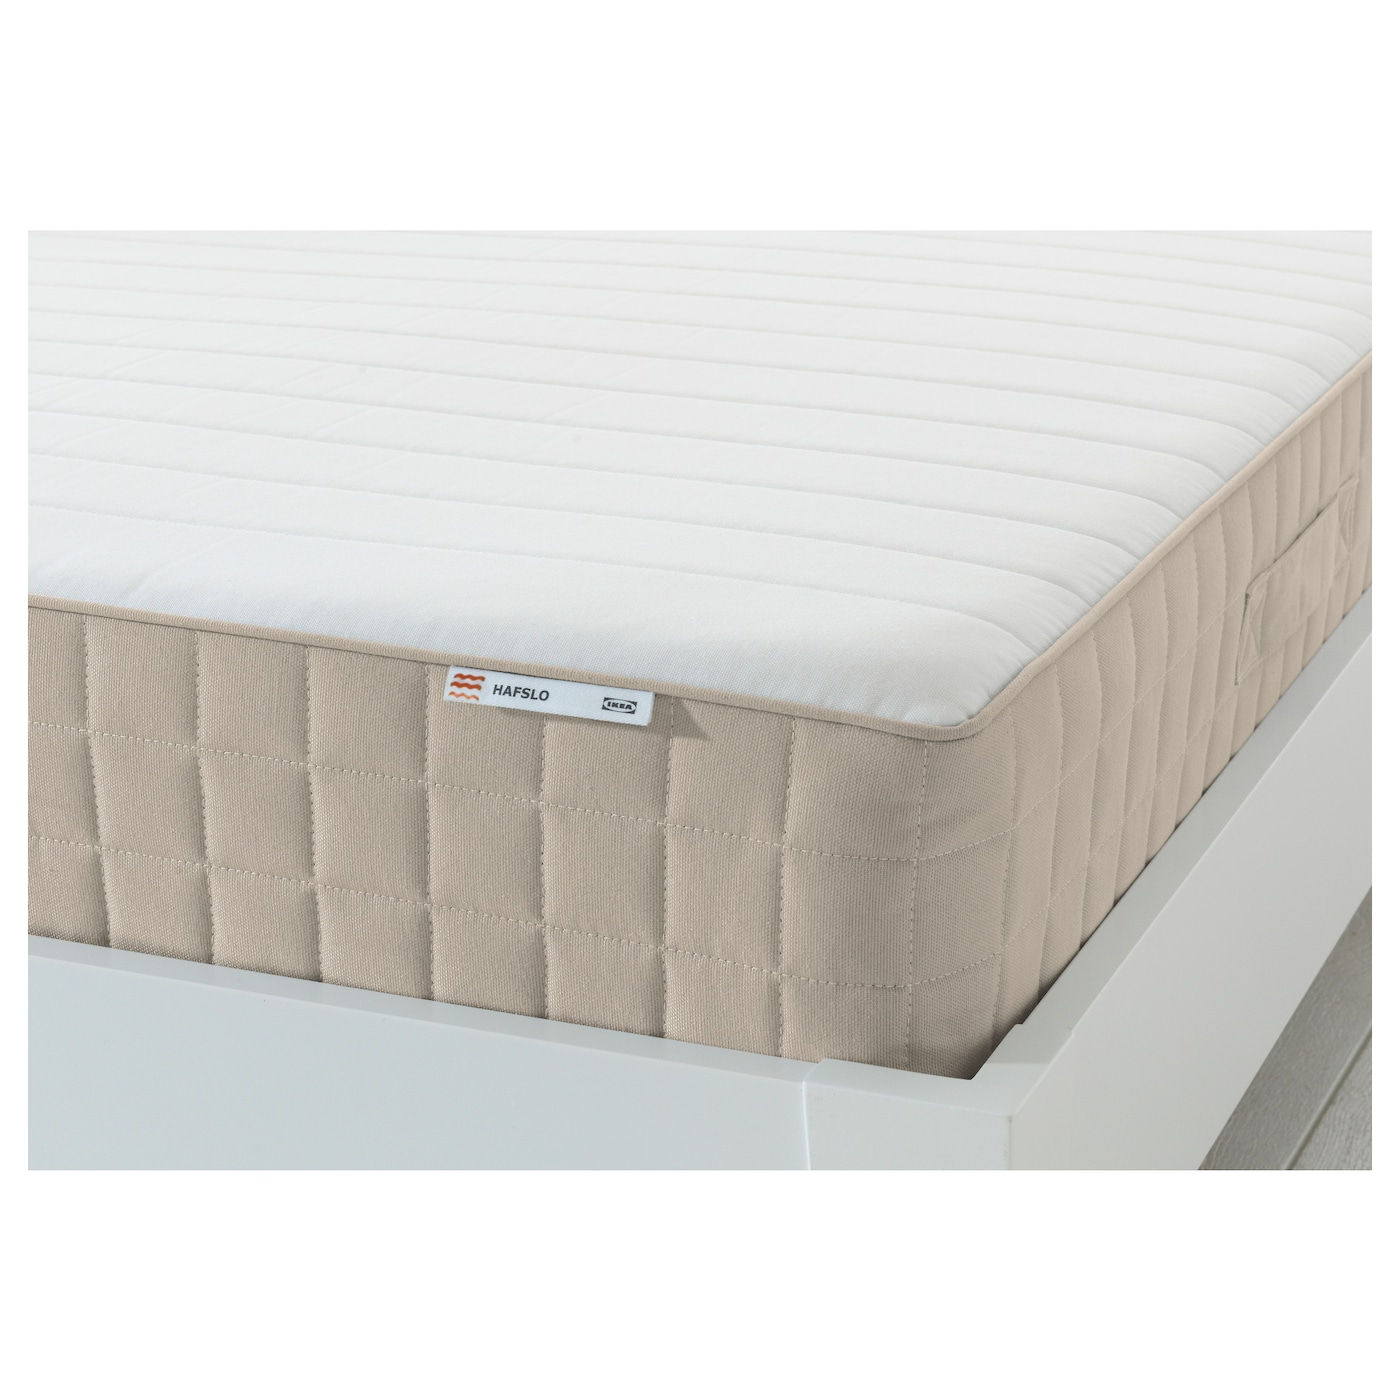 IKEA HAFSLO sprung mattress Designed to be used on one side only – no need to turn.